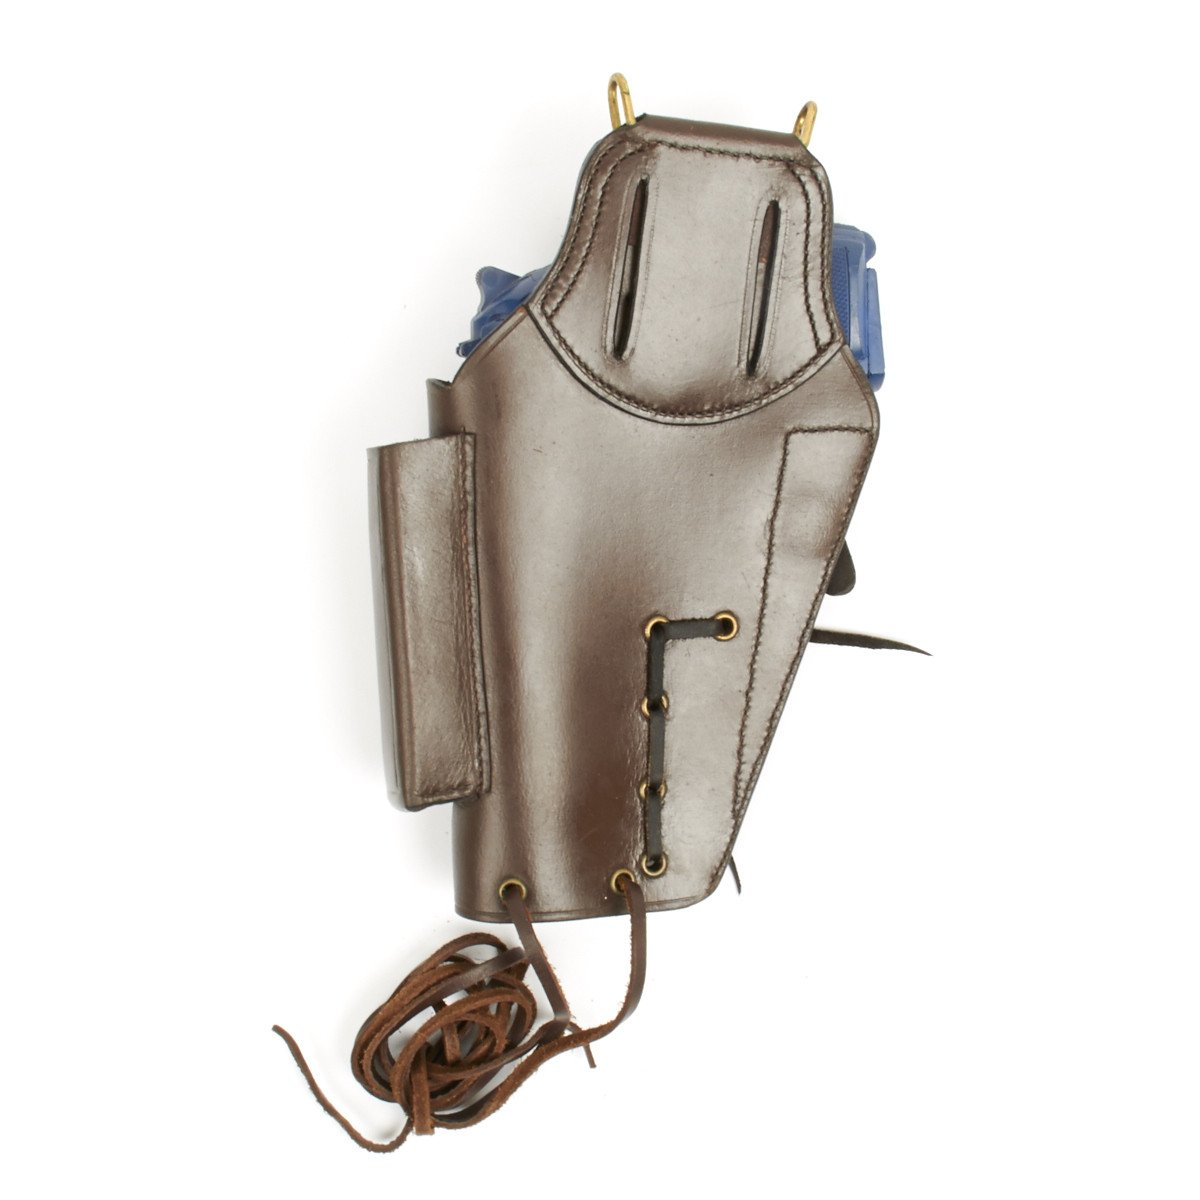 U S  Beretta 92 Model Brown Leather Hip Holster with Laser Sight